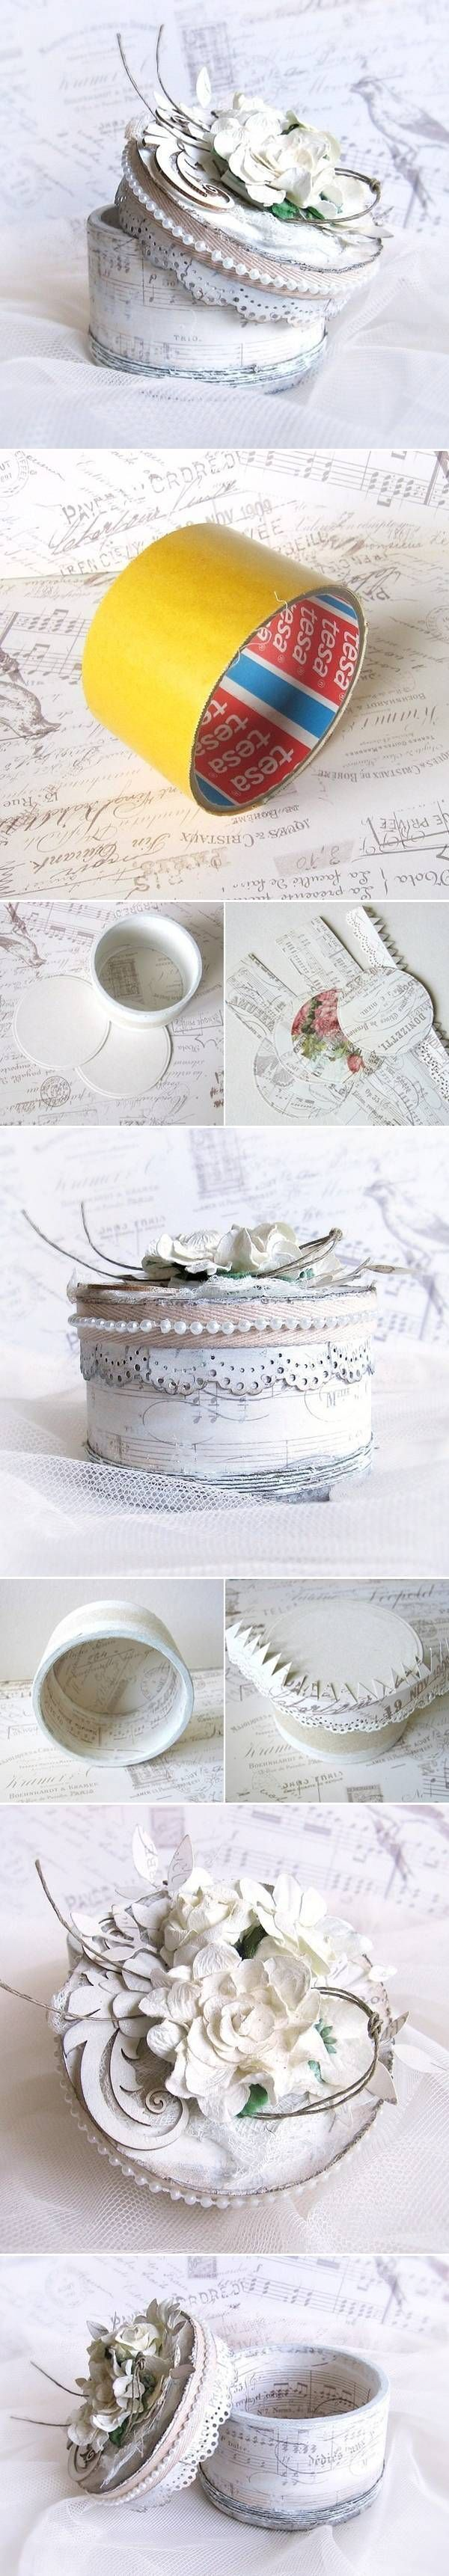 DIY Tape Roll Jewelry Box: